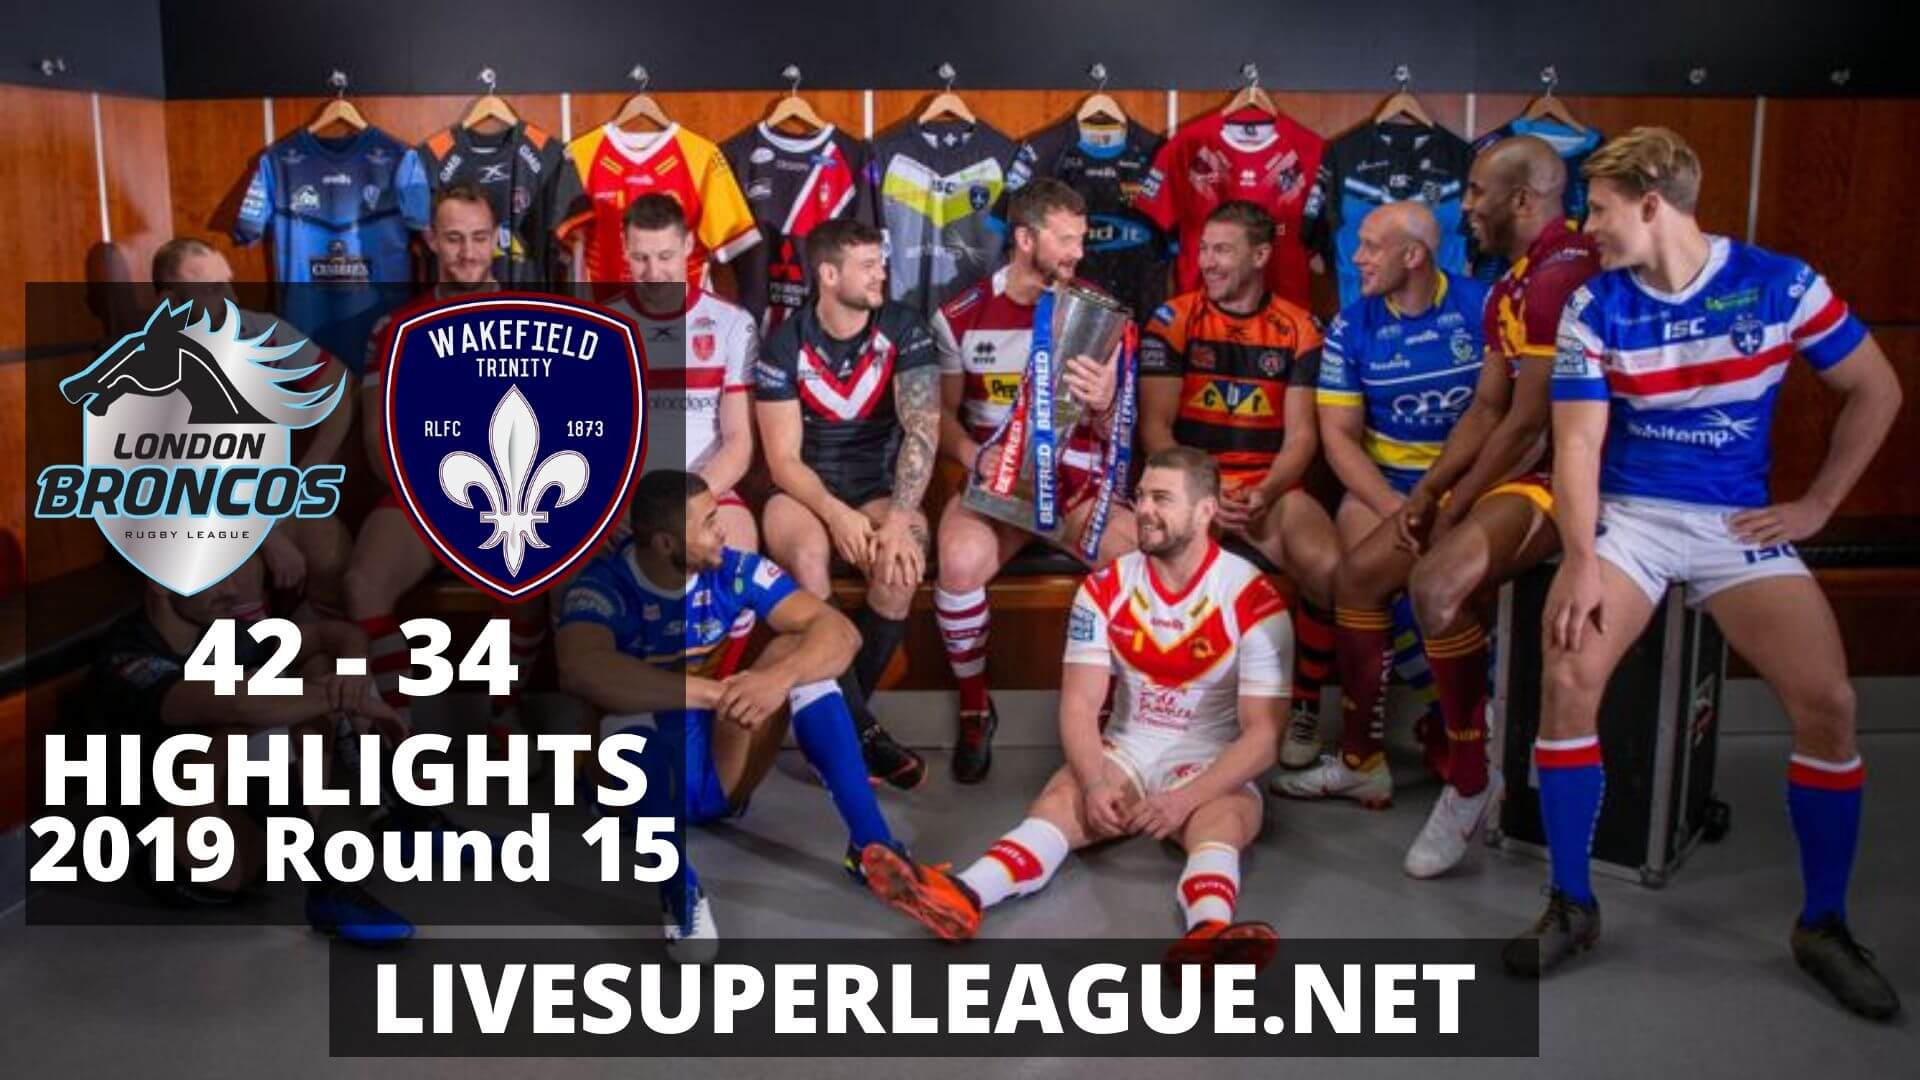 London Broncos Vs Wakefield Trinity Highlights 2019 Round 15